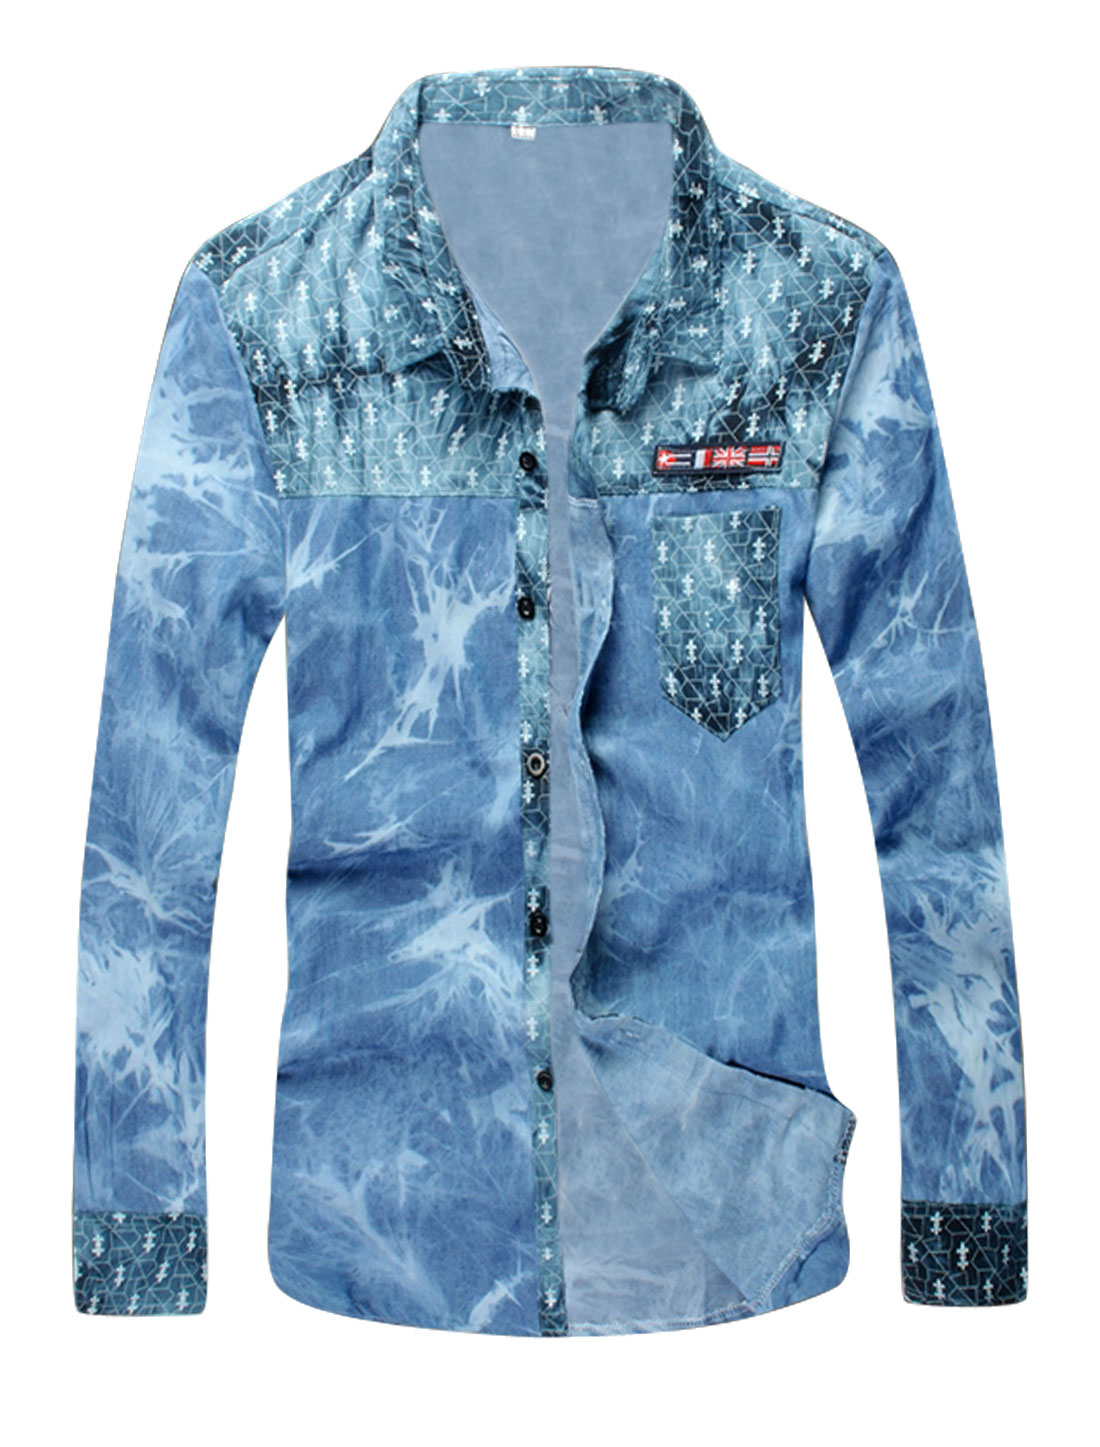 Men Novelty Prints Single Breasted Spliced Casual Shirt Blue S